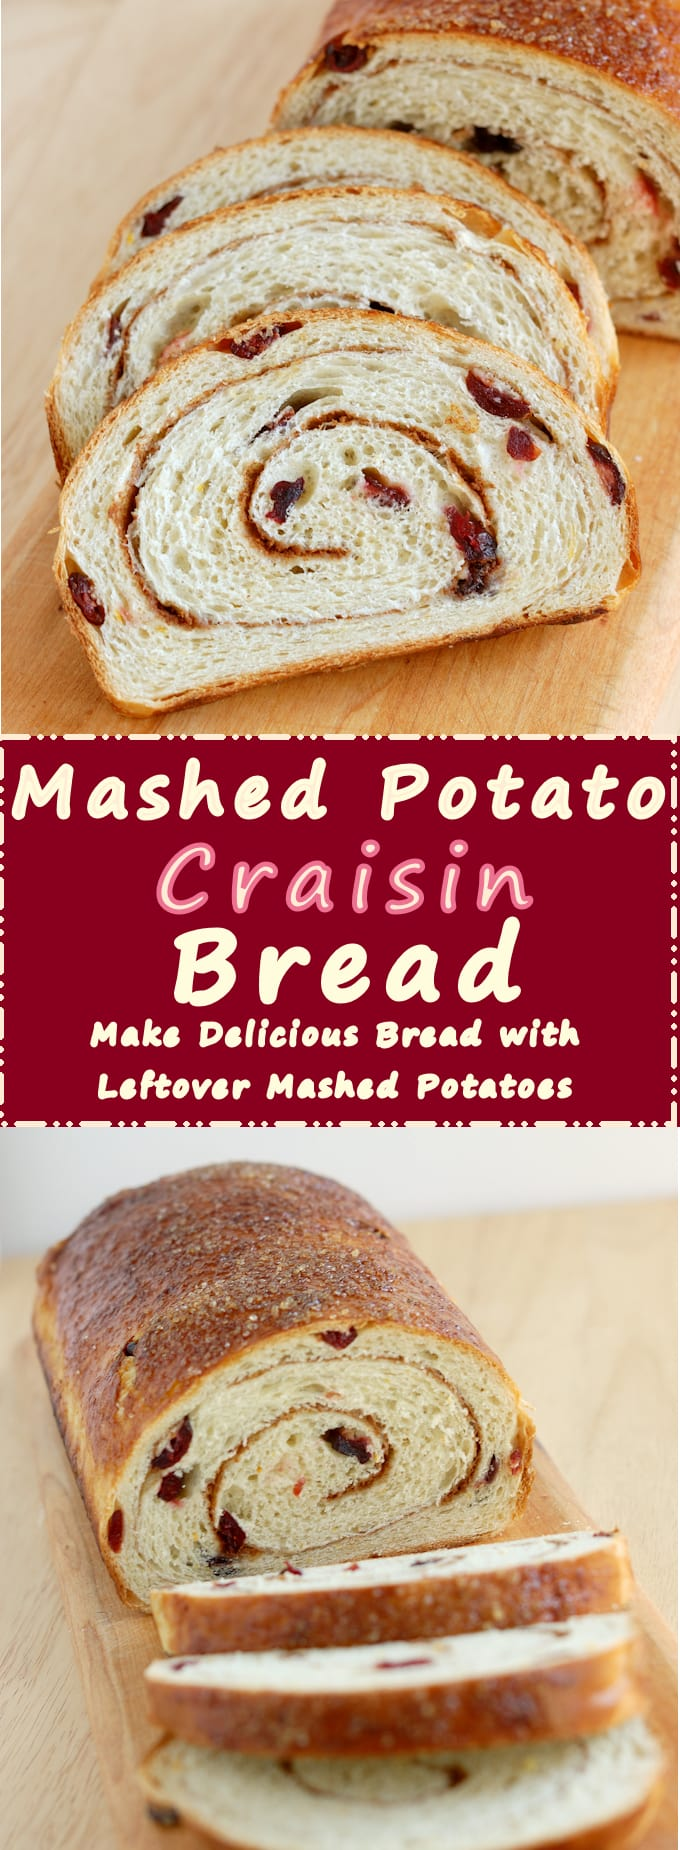 Use left over mashed potatoes to make soft and sweet craisin bread with a cinnamon swirl. #SundaySupper